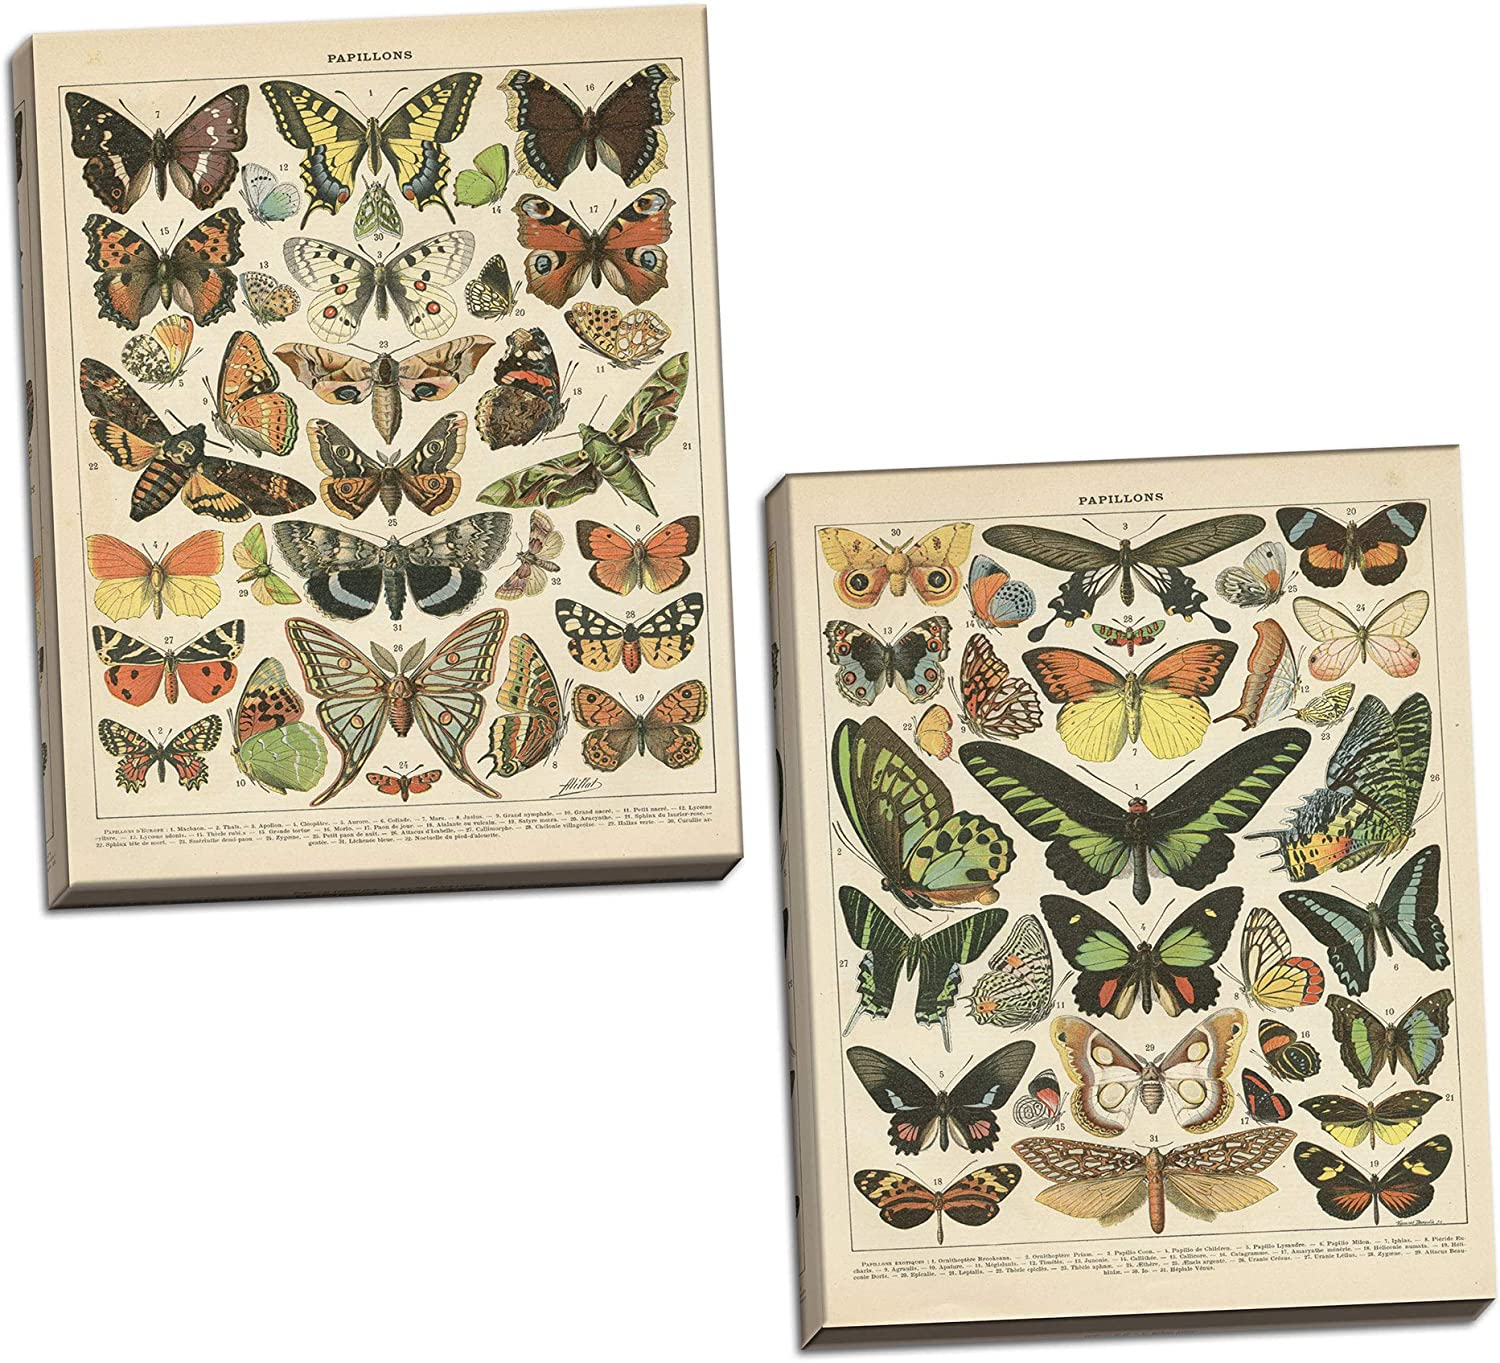 Gango Home Décor Popular Vintage French Types of Papillons Butterflies Set; Two 16x20in Hand-Stretched Canvases